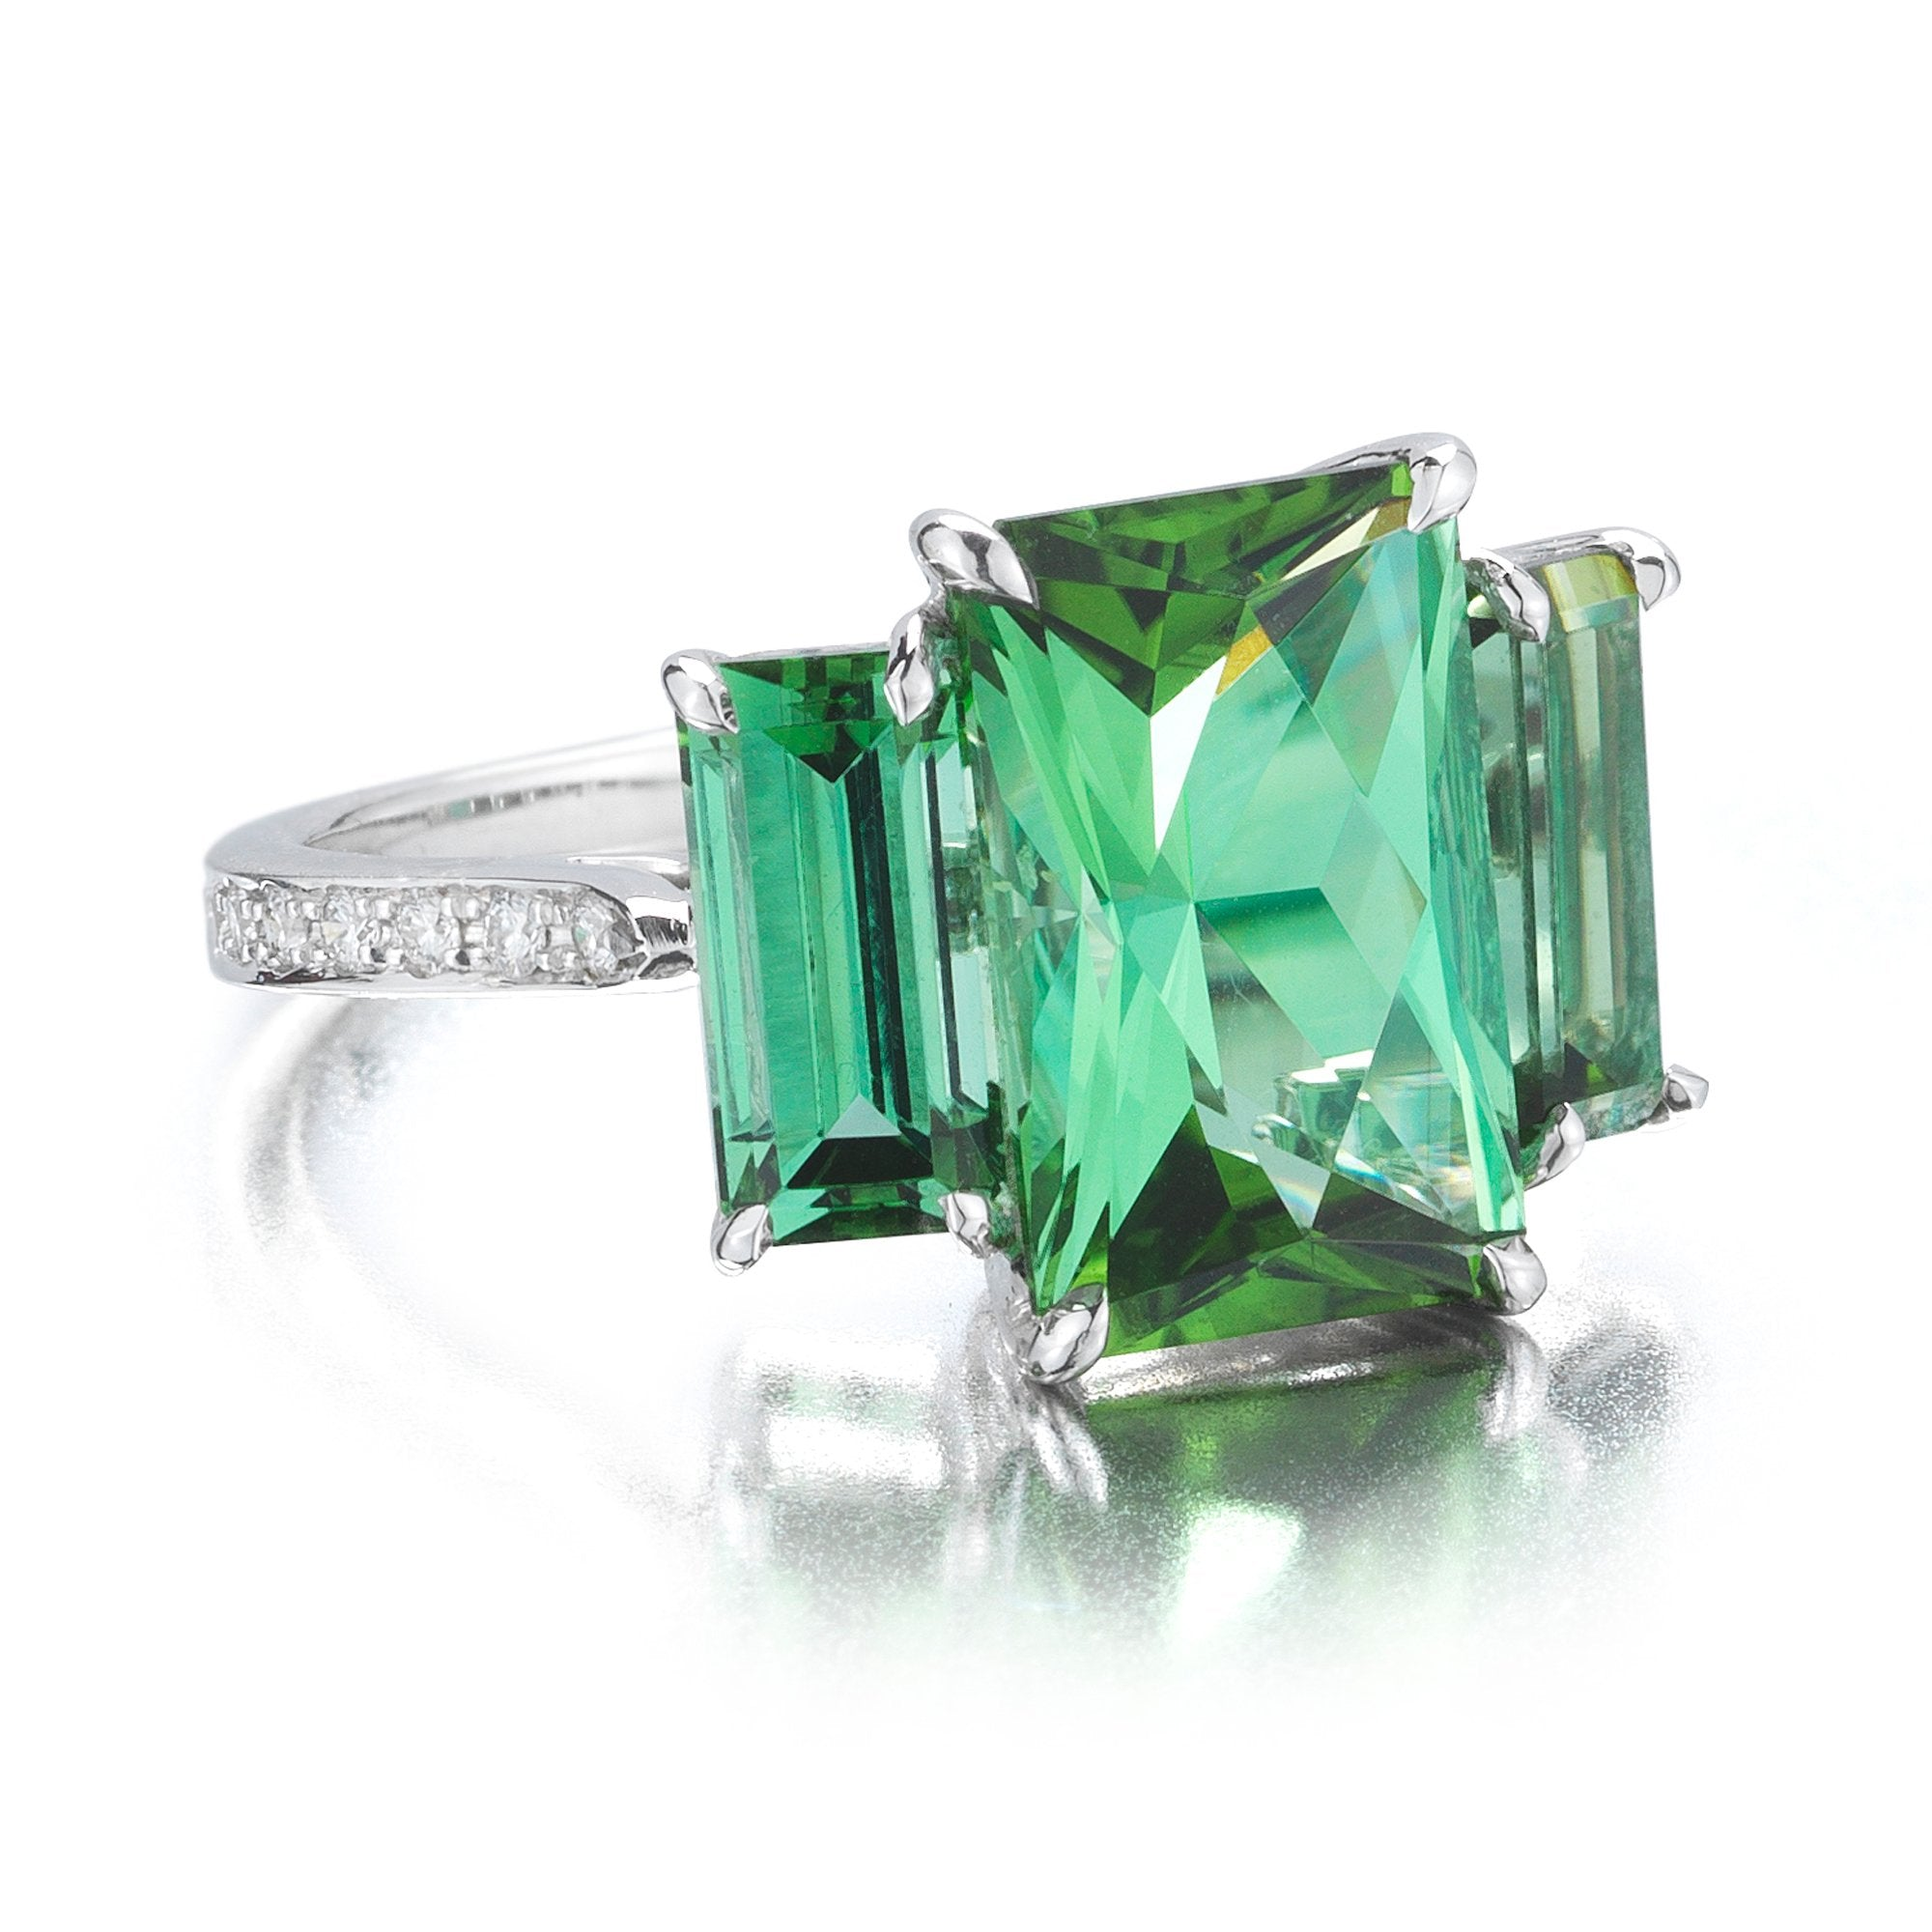 pave fullxfull dlpa natural cut r ring band engagement product emerald with diamond engagment jewels radiant j il